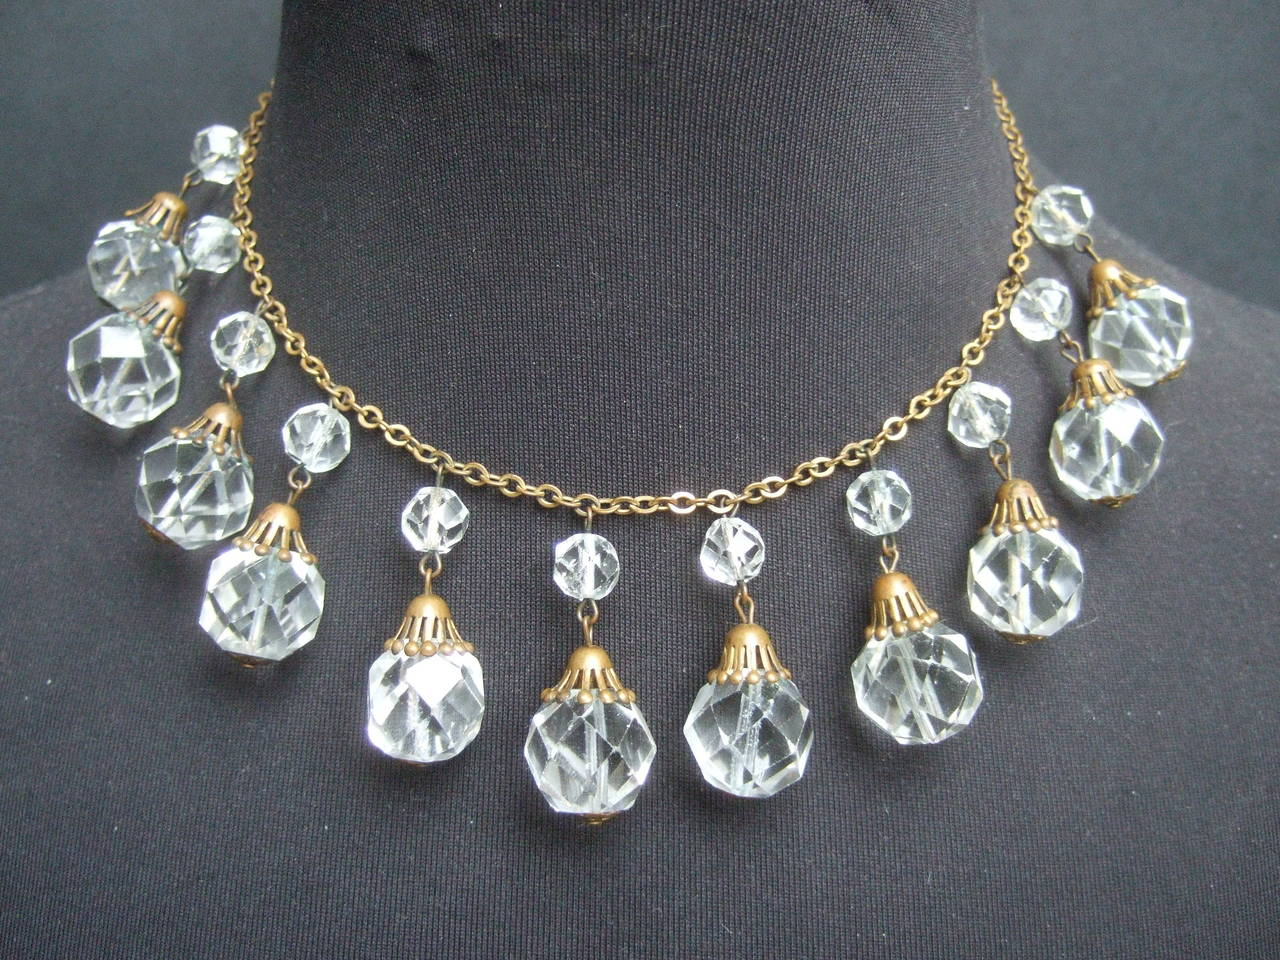 Opulent Art Deco Crystal Drop Necklace c 1940s 2